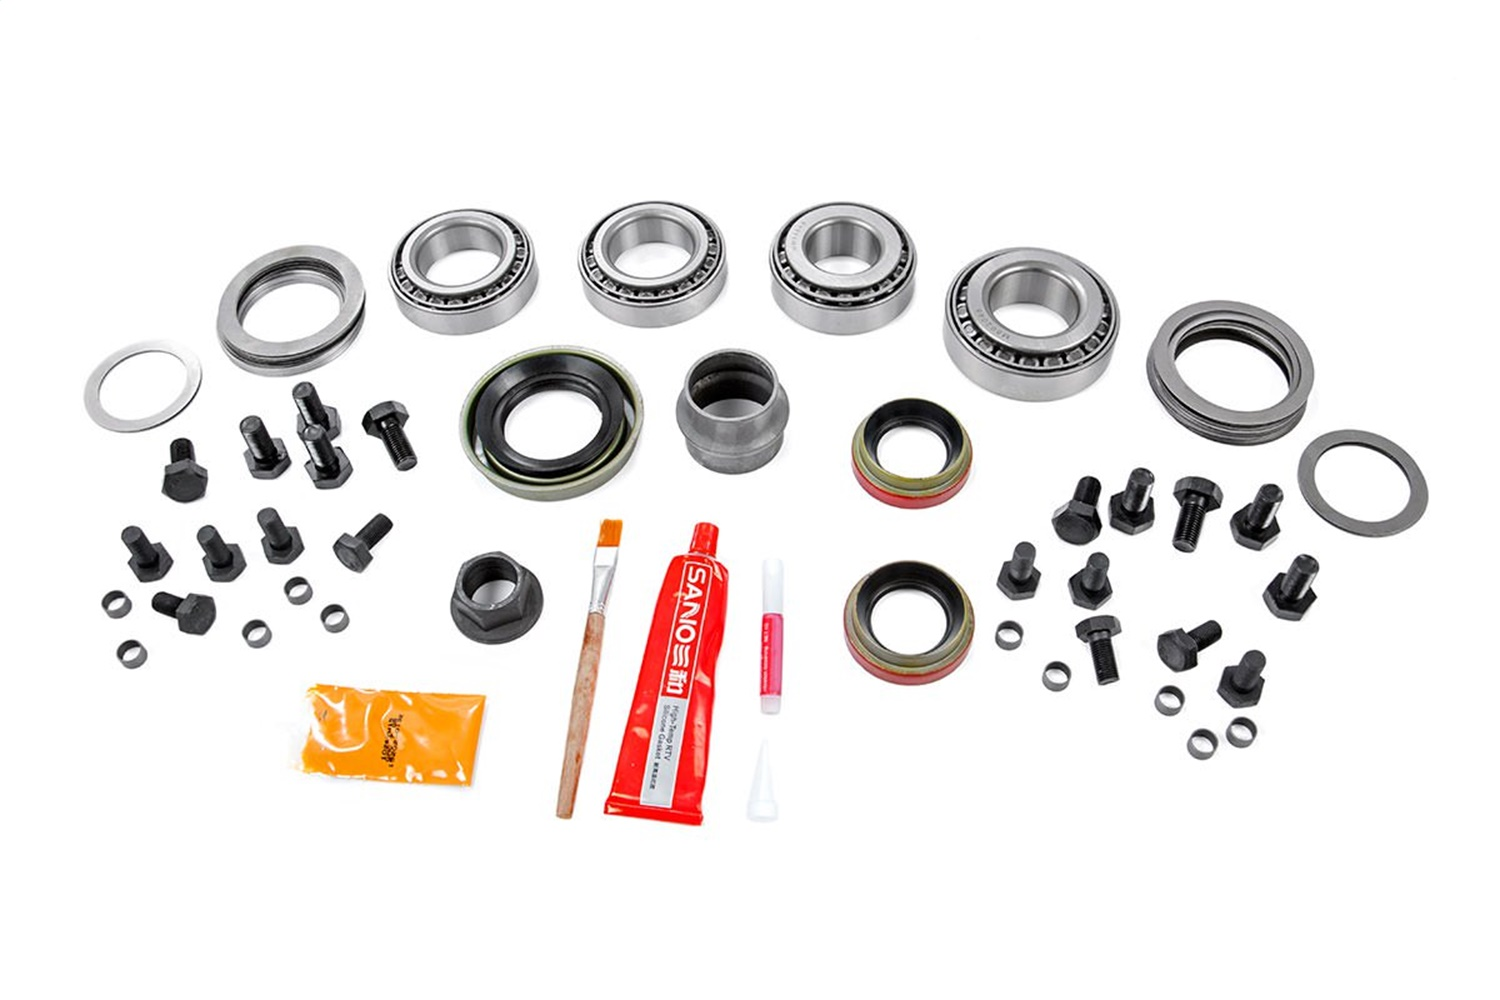 Rough Country 54400021 Ring And Pinion Master Install Kit